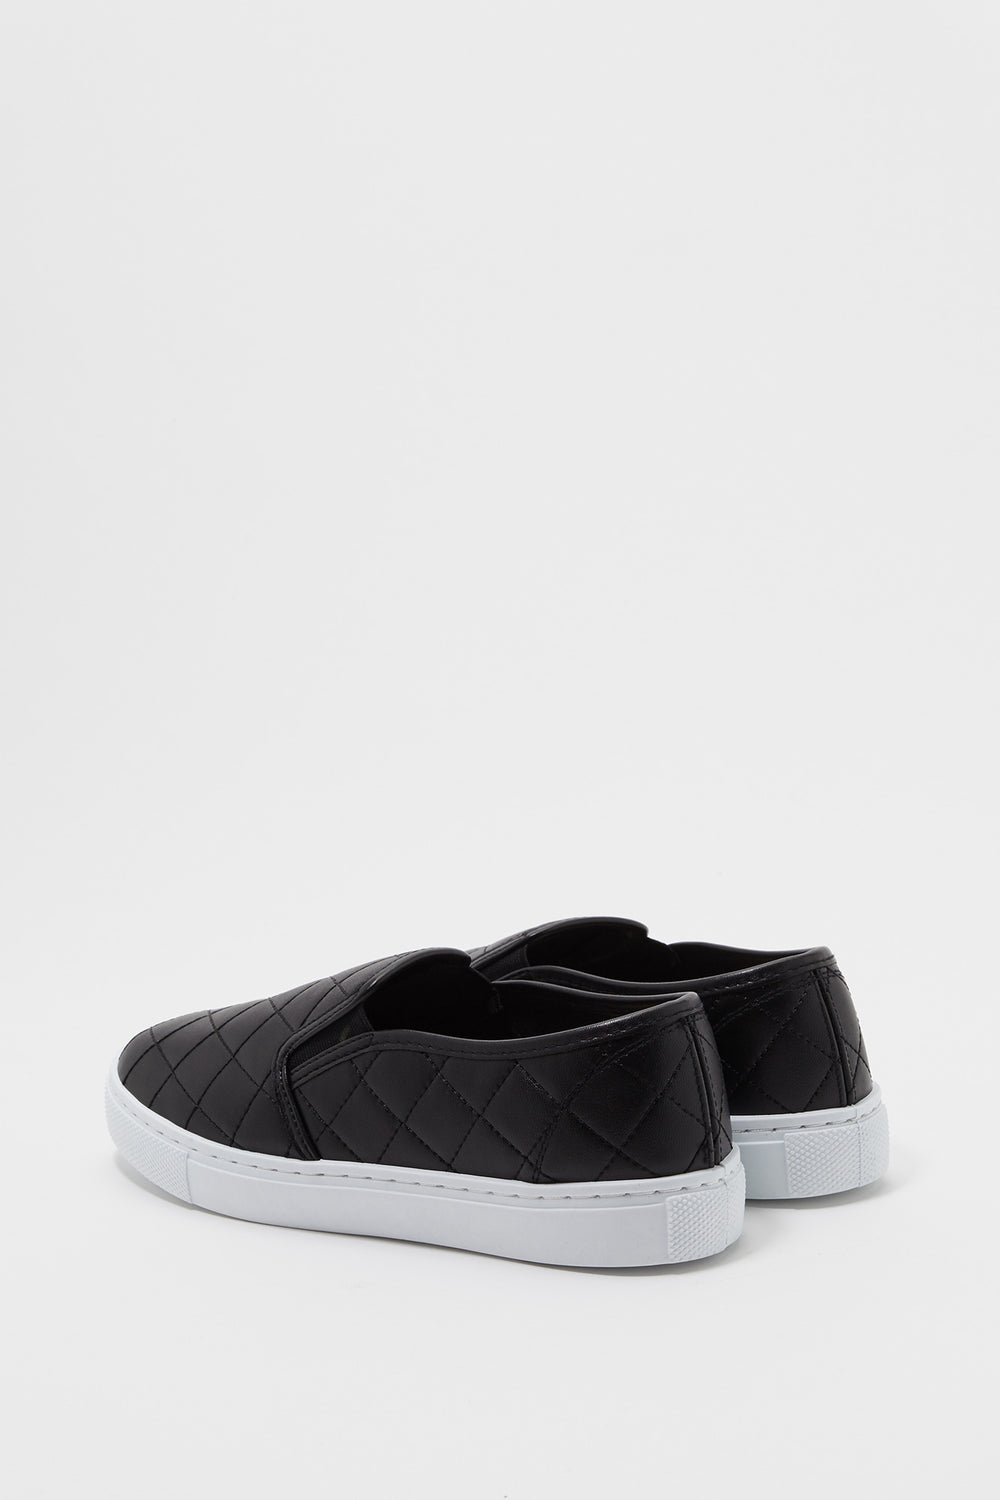 Quilted Faux-Leather Slip On Sneaker Black